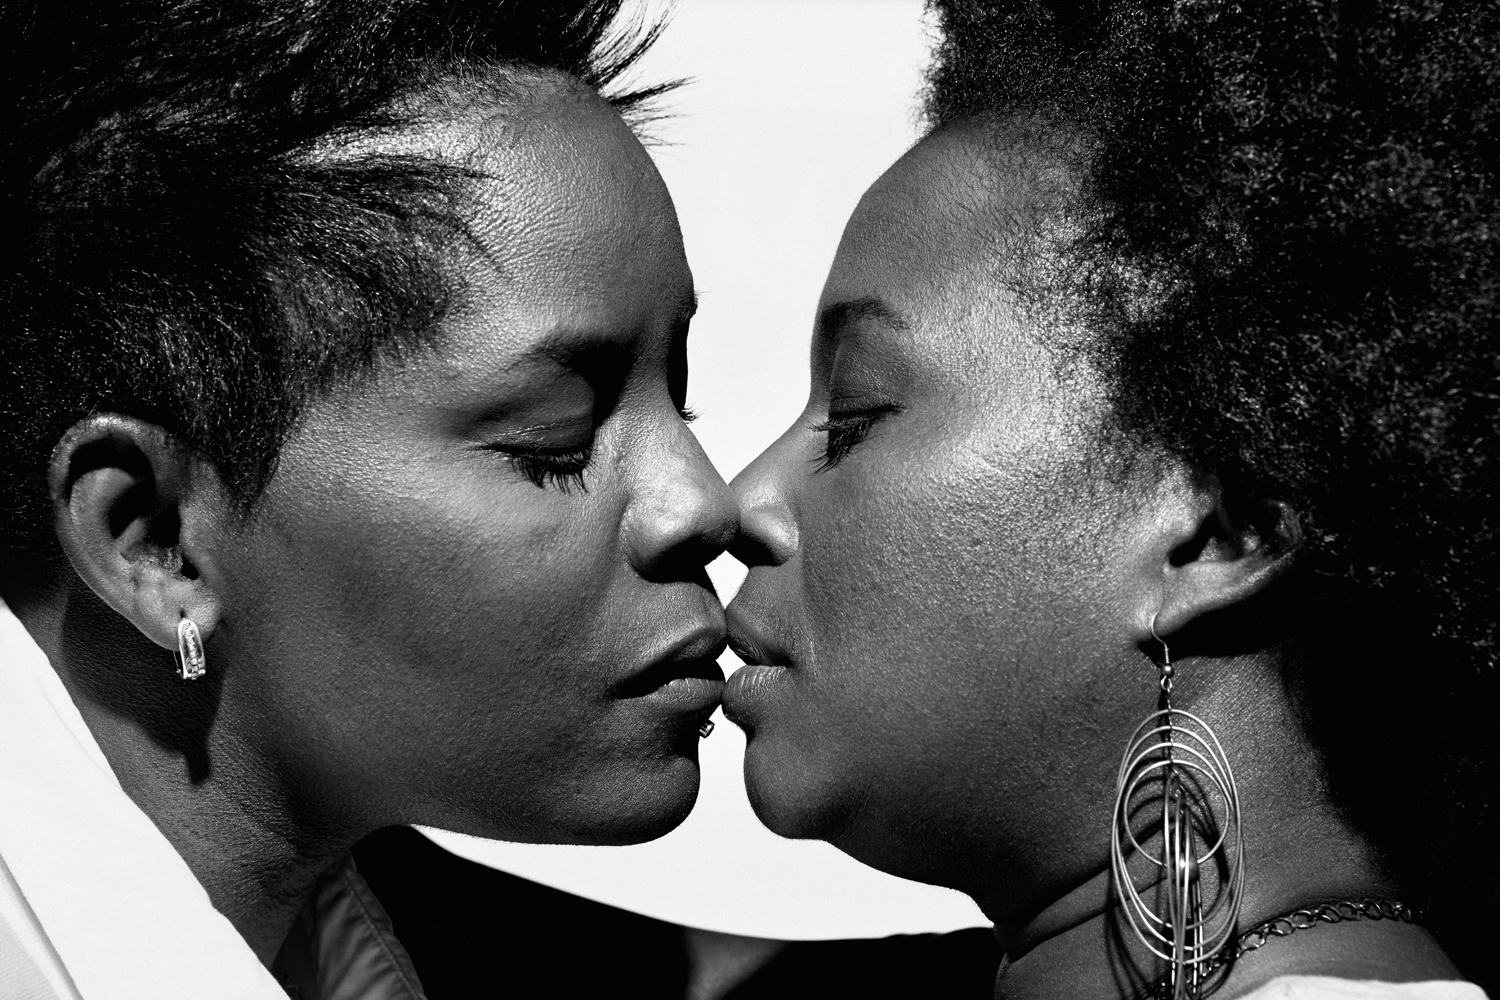 Elaine Harley, left, and Mignon R. Moore. From  How Gay Marriage Won,  April 8, 2013 issue.